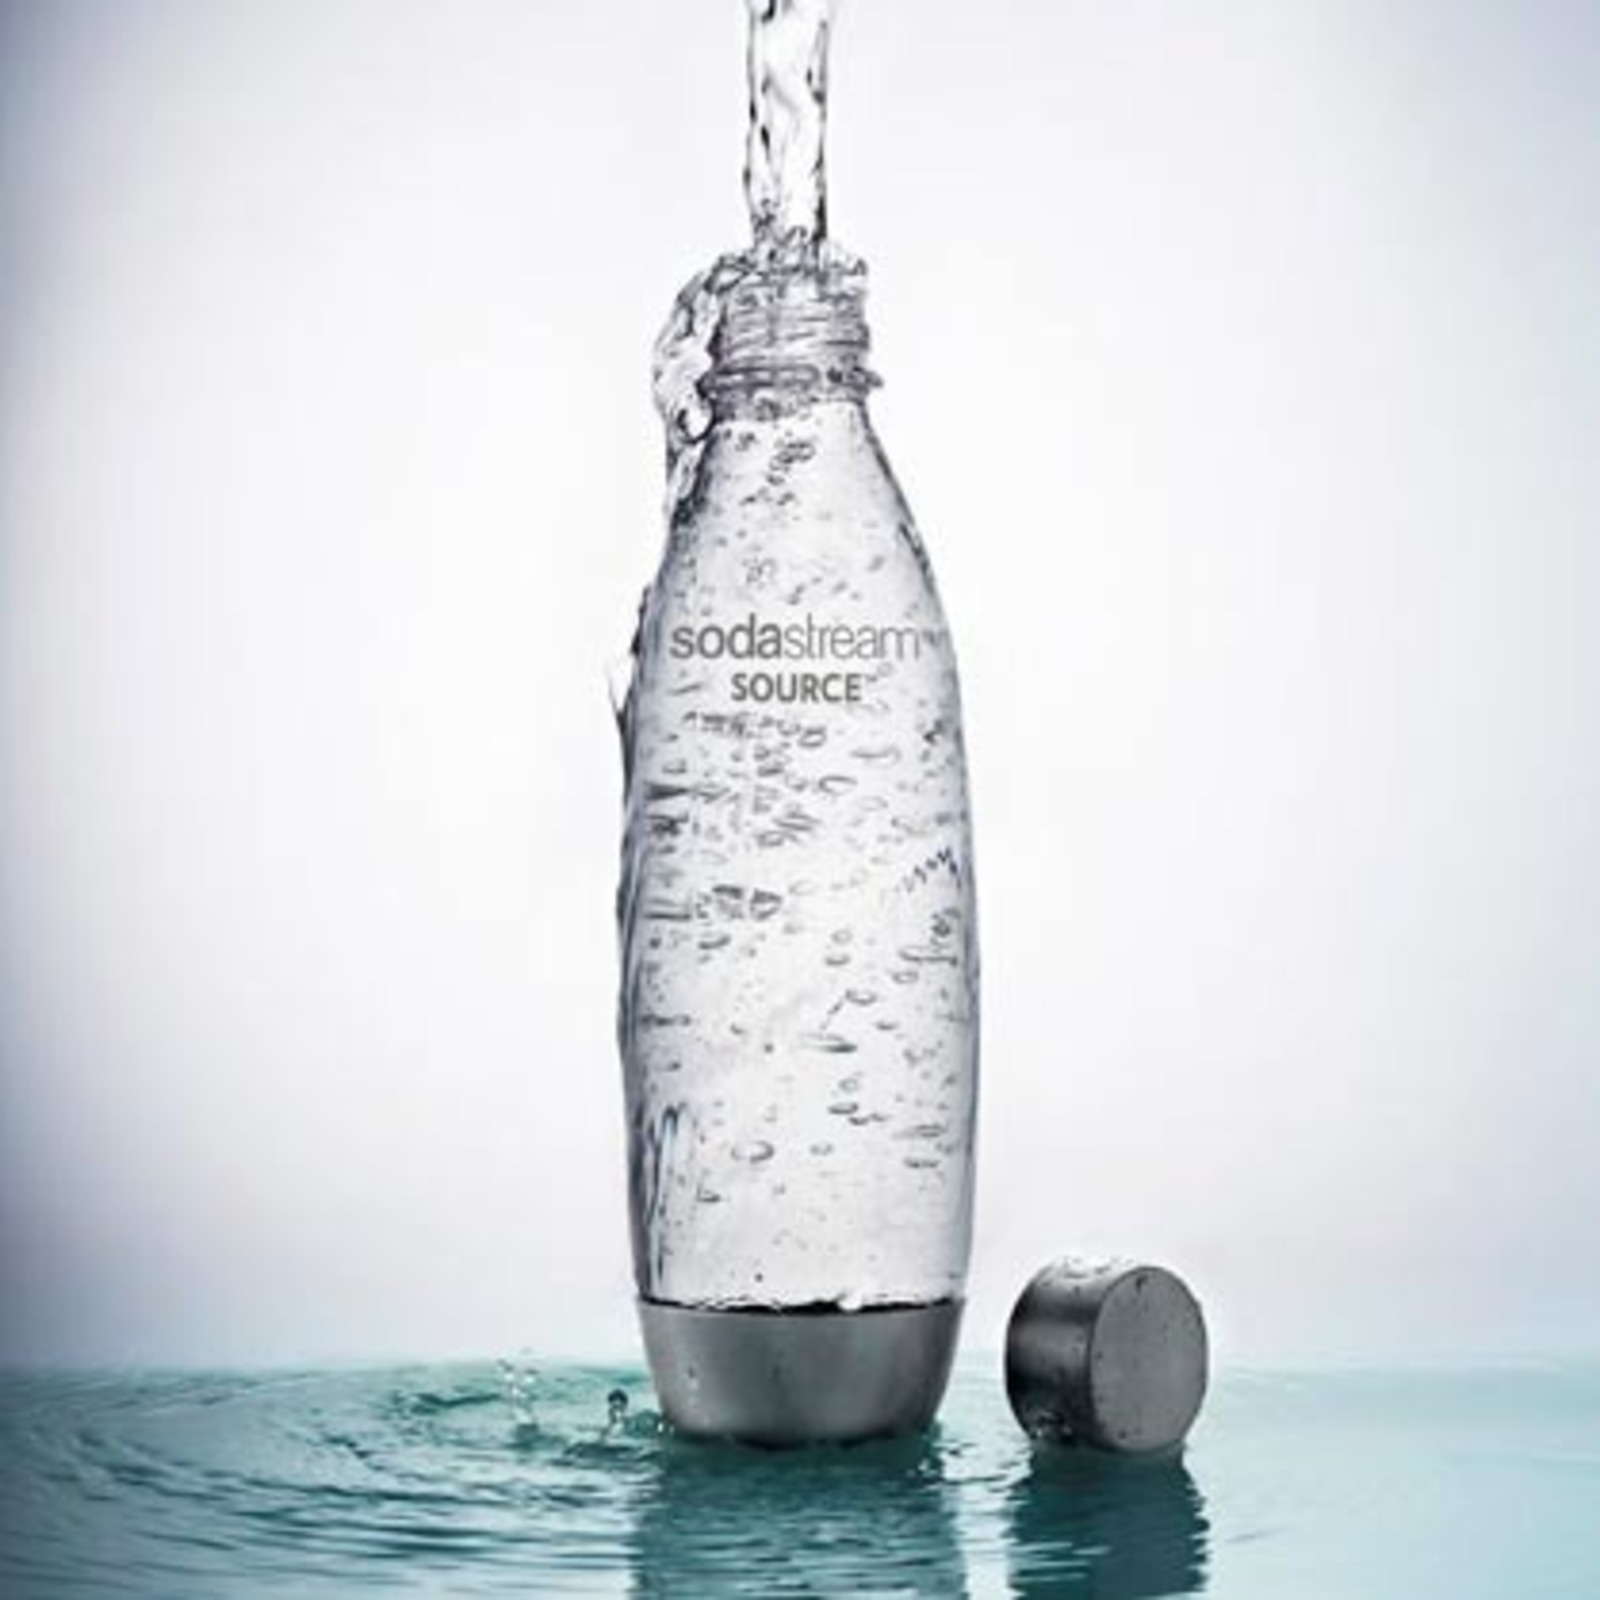 SodaStream Source Bottle by Yves Bhar  Cool Hunting